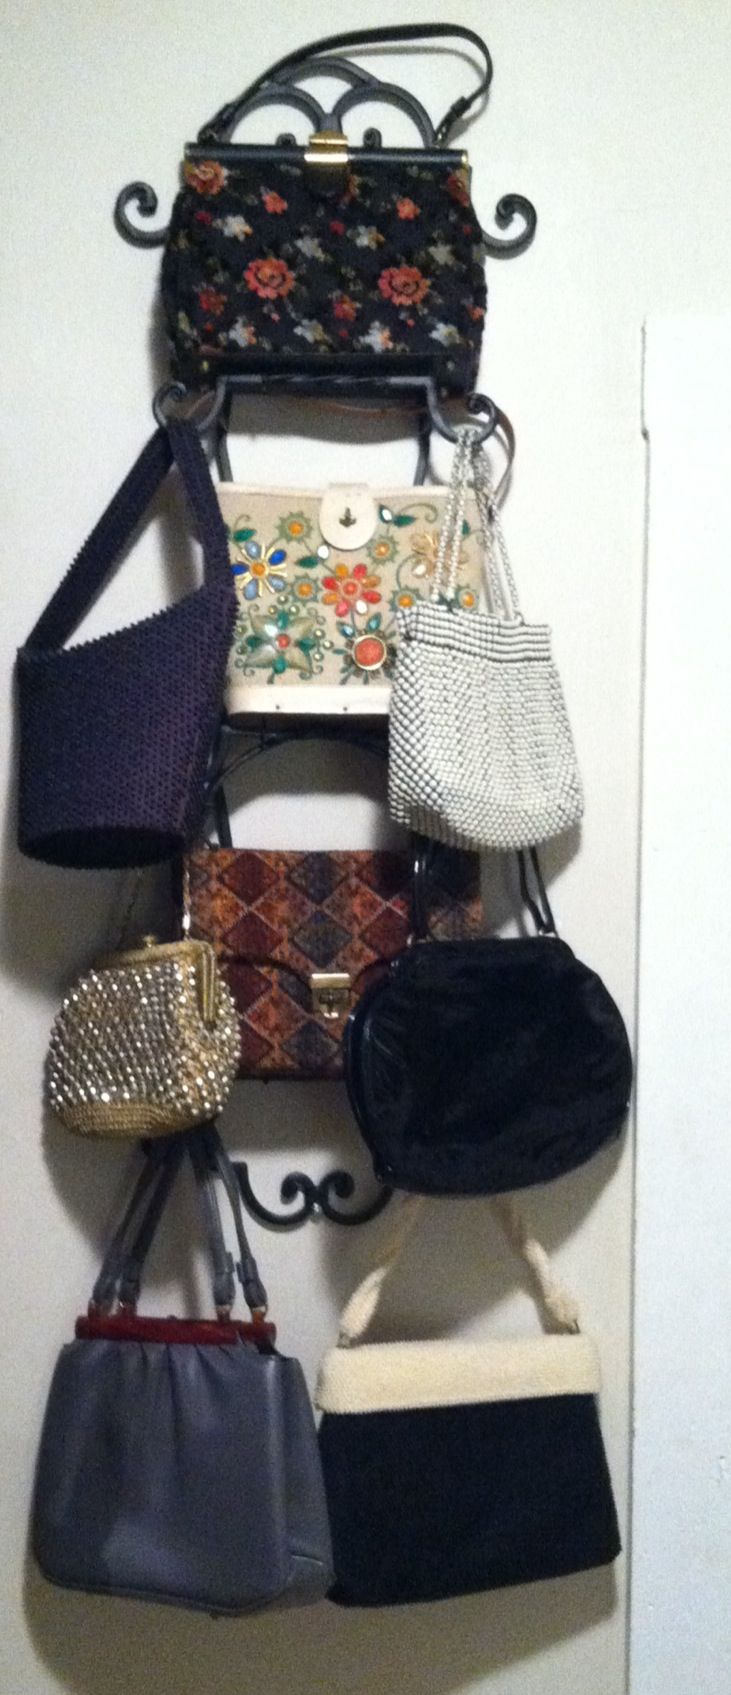 Plate Rack Used To Display Vintage Purses Home Ideas For